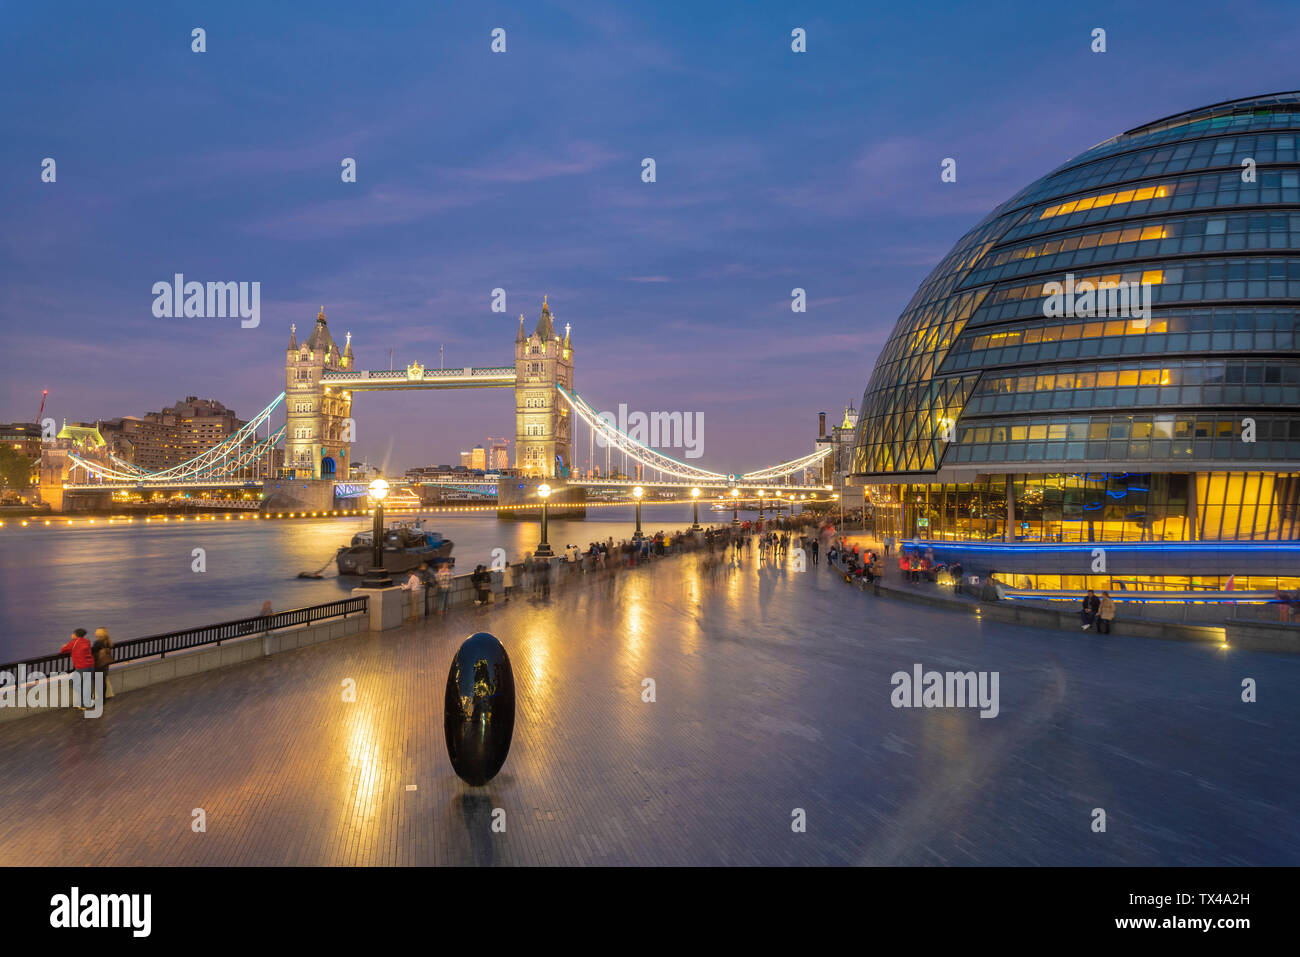 UK, London, illuminated Tower Bridge and city hall at night - Stock Image